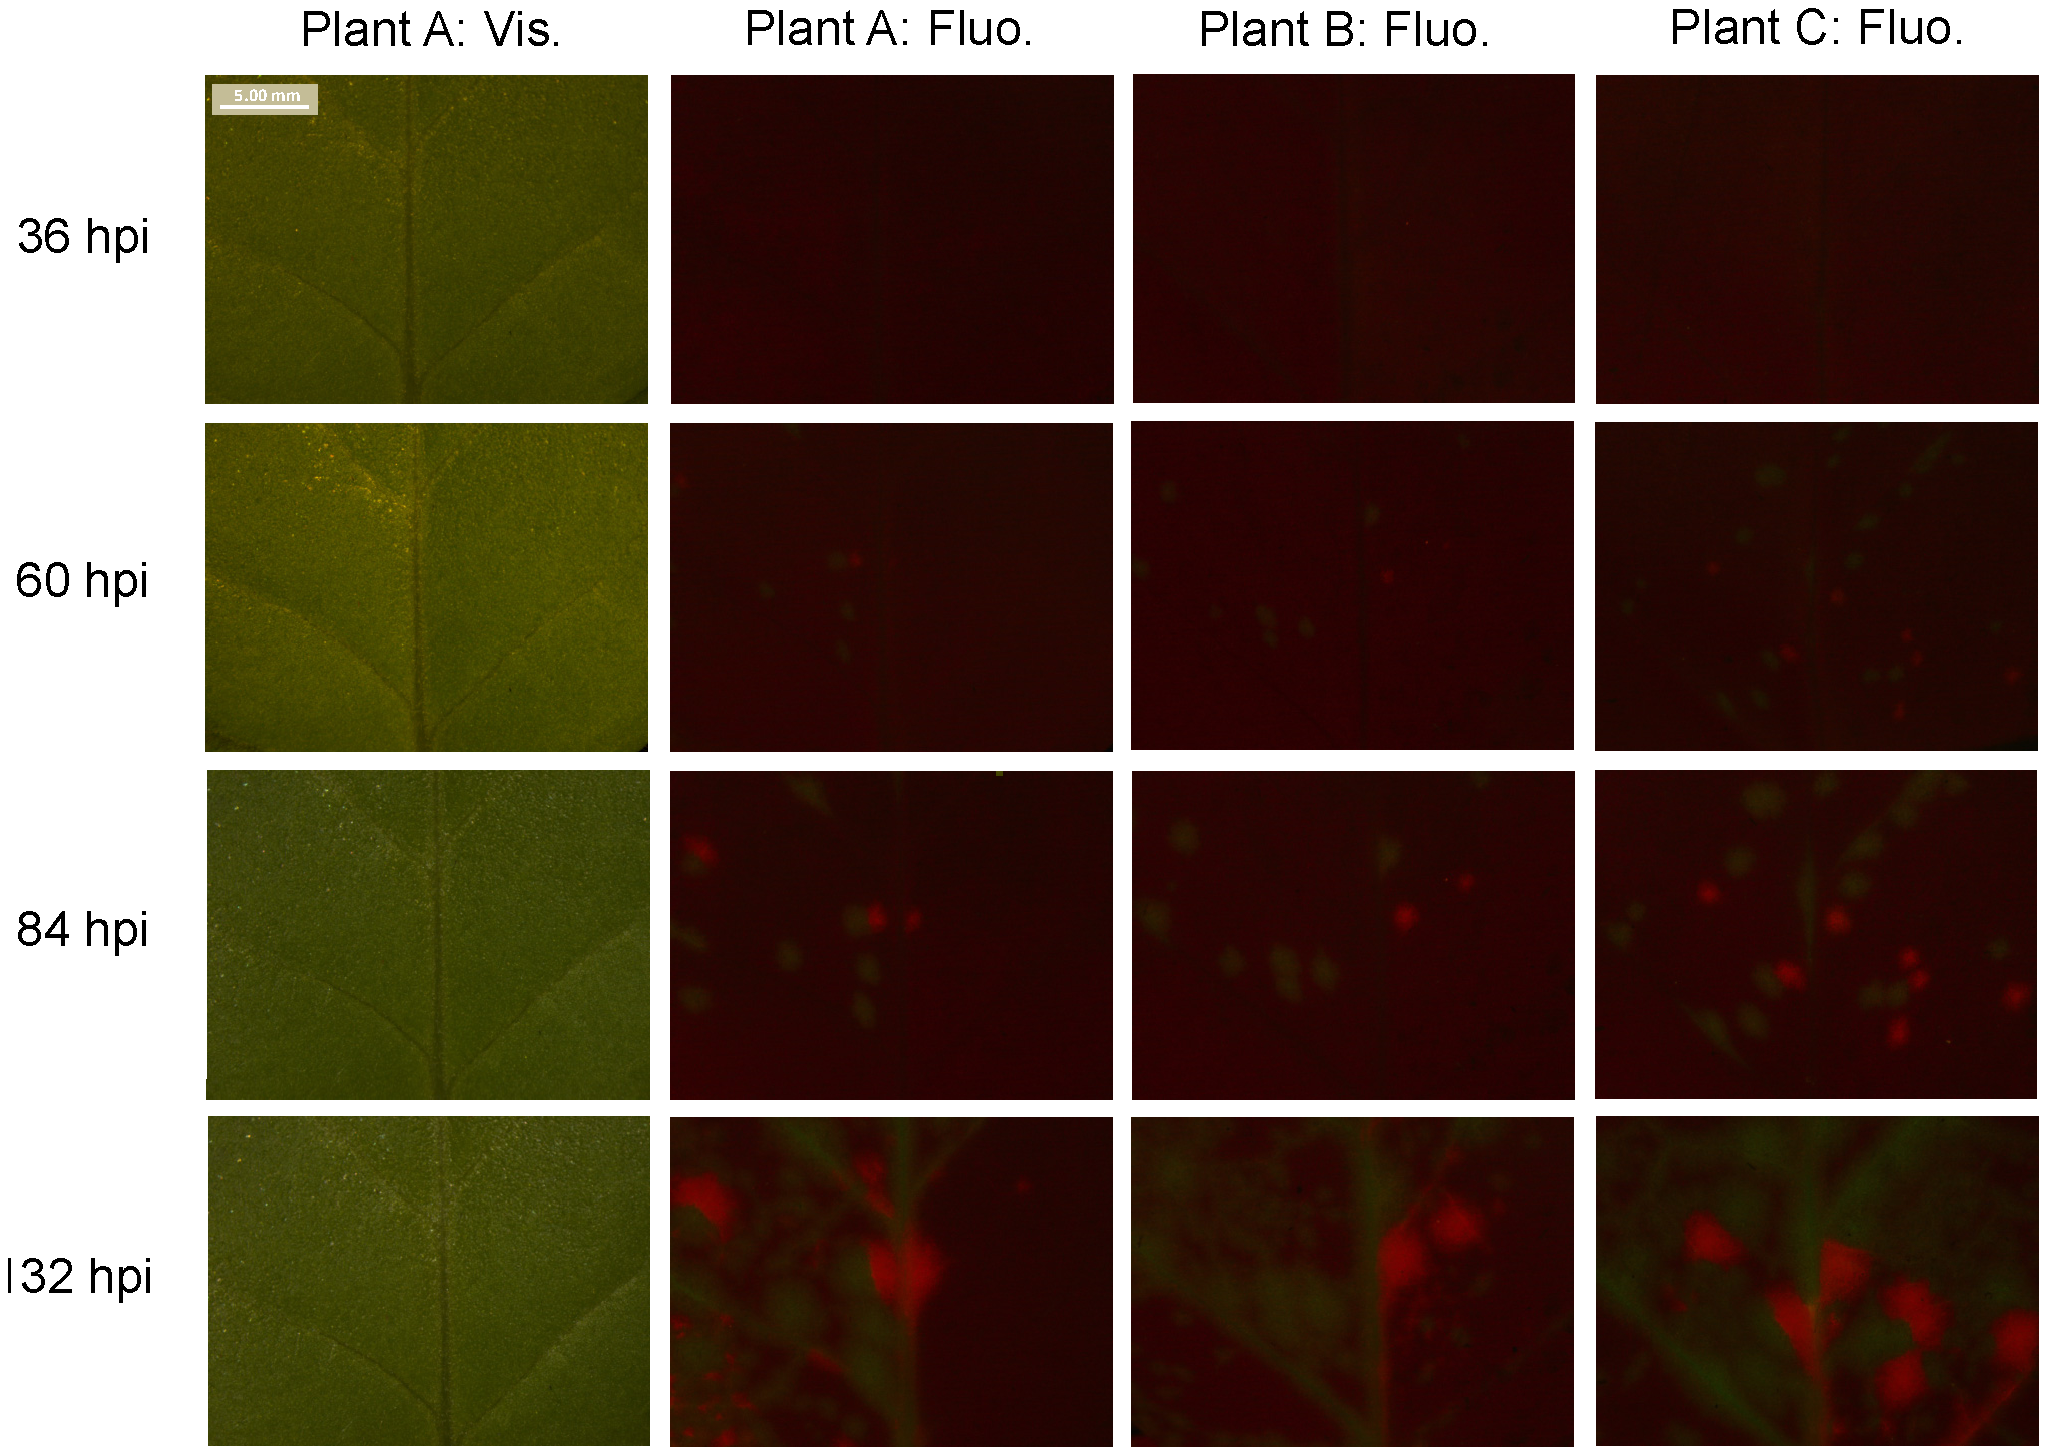 Fluorescence time course in inoculated <i>N. tabacum</i> leaves.